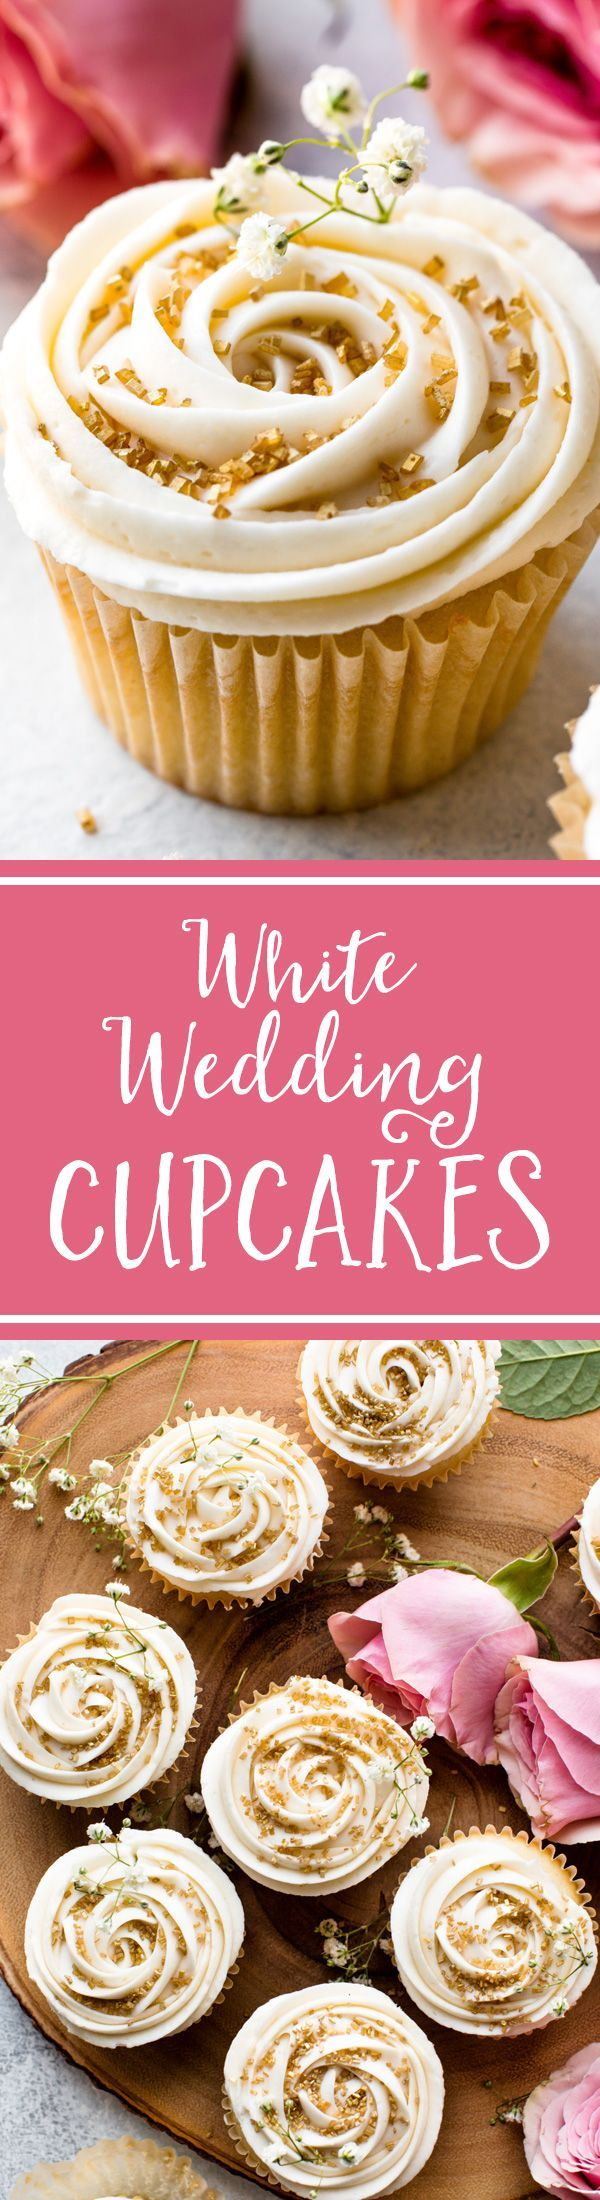 cupcake recipes for bridal shower%0A Soft and fluffy vanilla wedding cupcakes topped with champagne frosting   Perfect for any wedding celebration